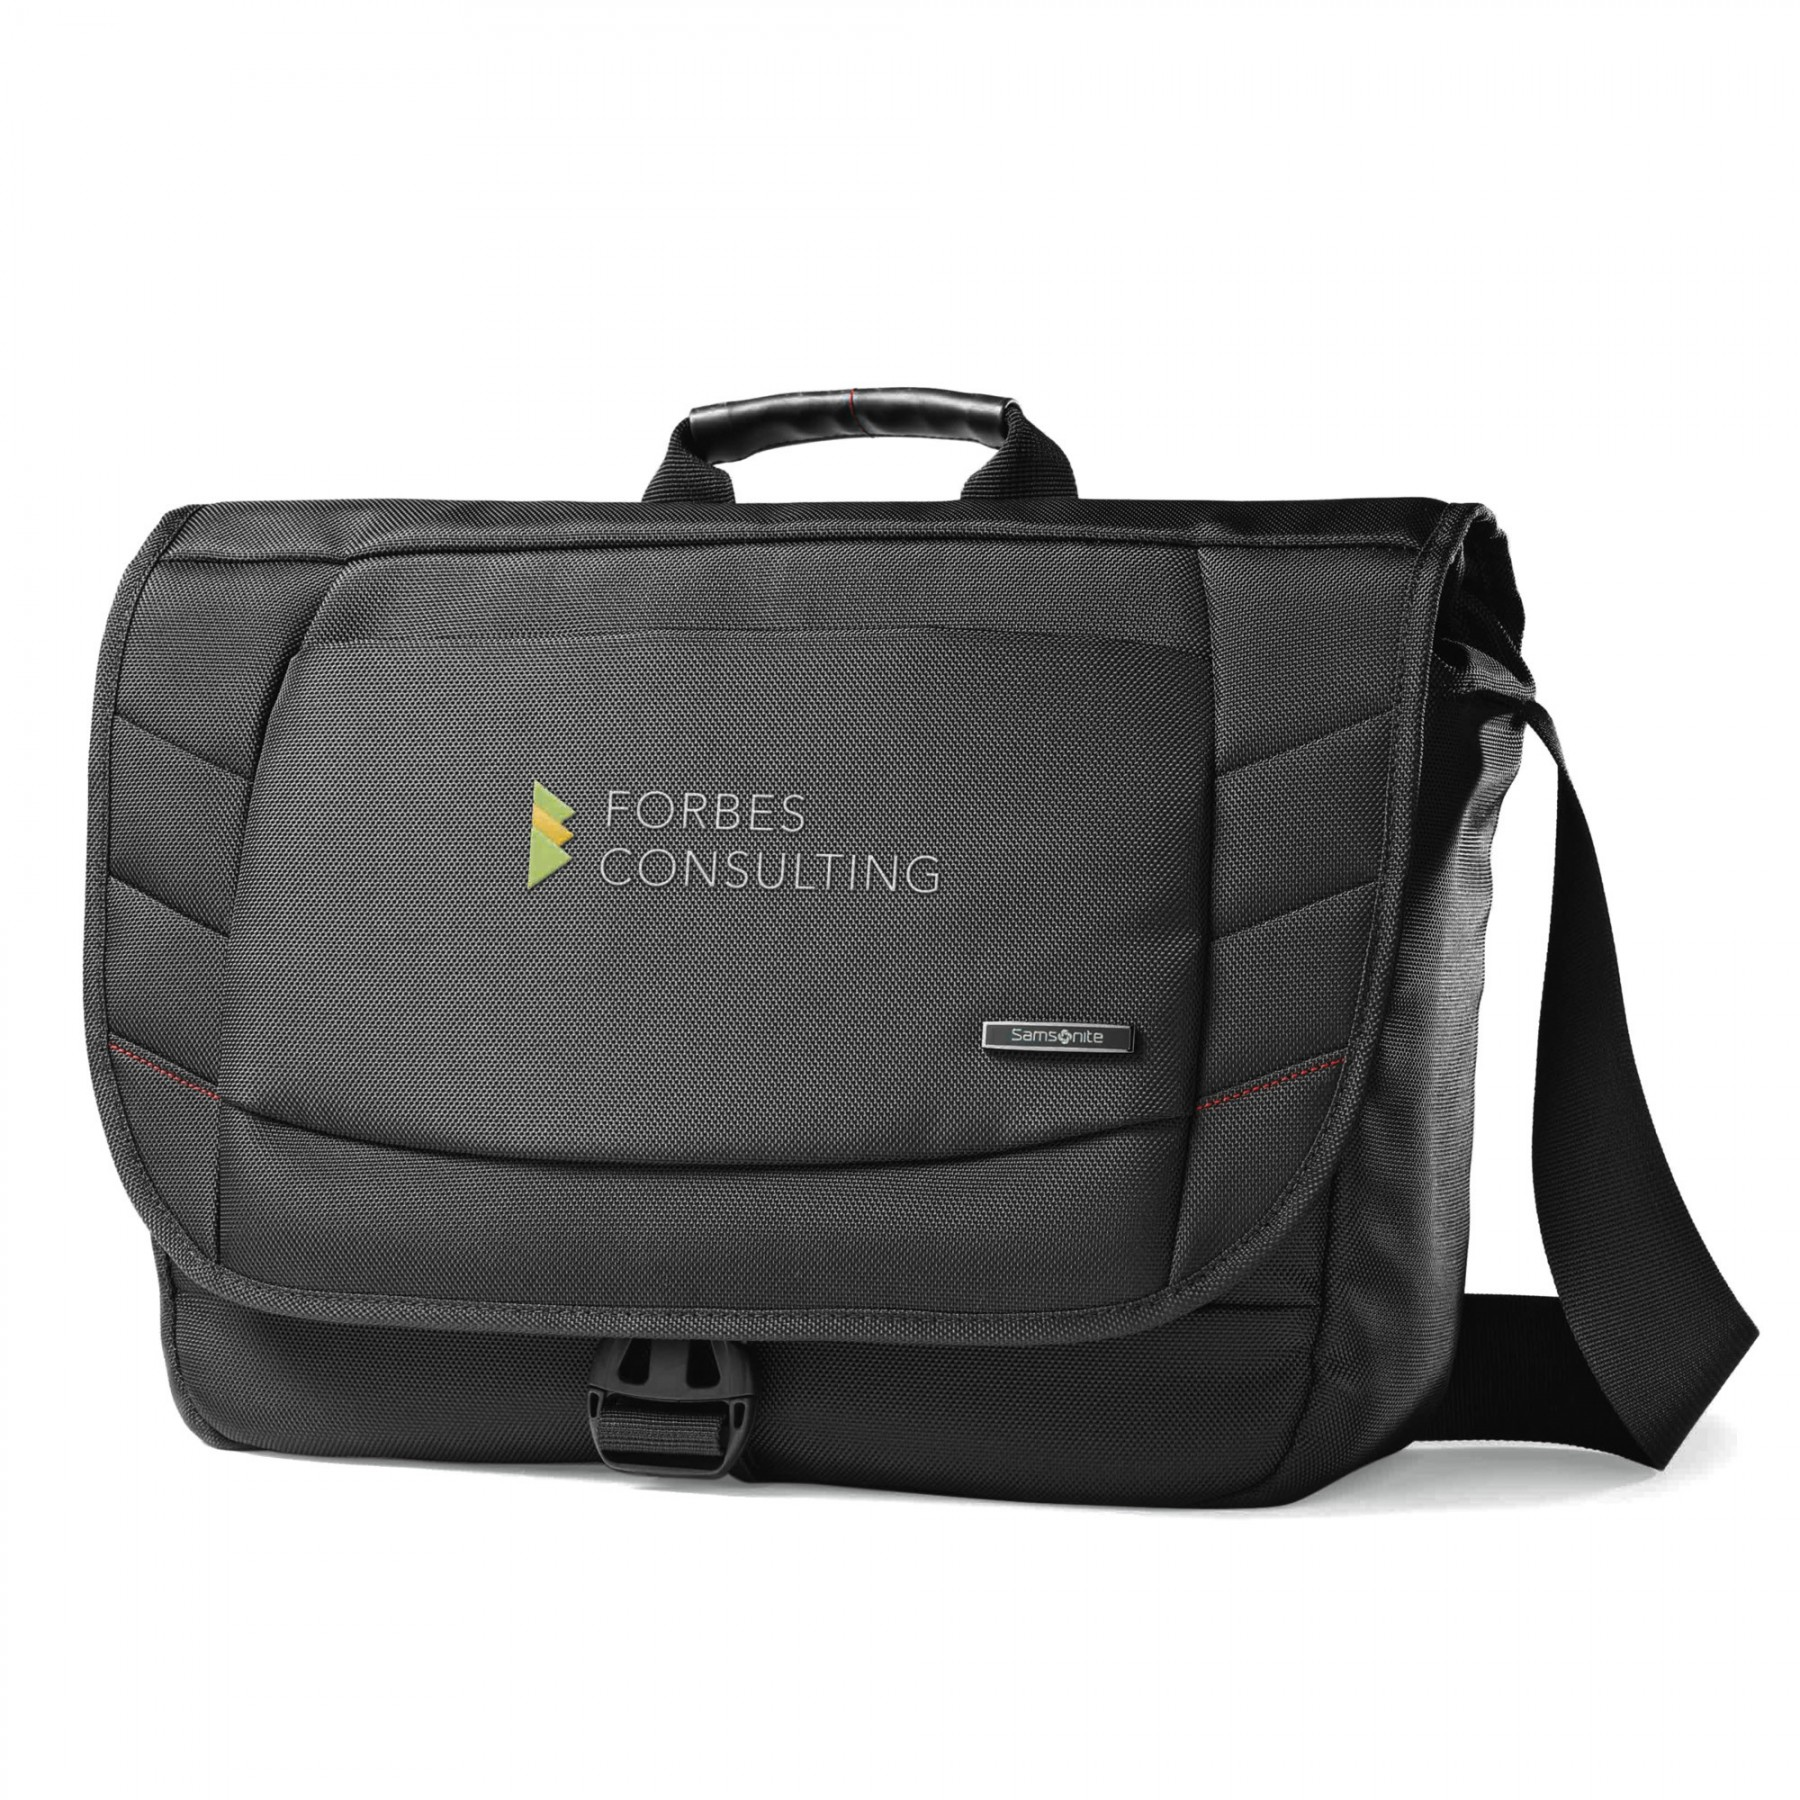 Samsonite Xenon2 Computer Messenger Bag